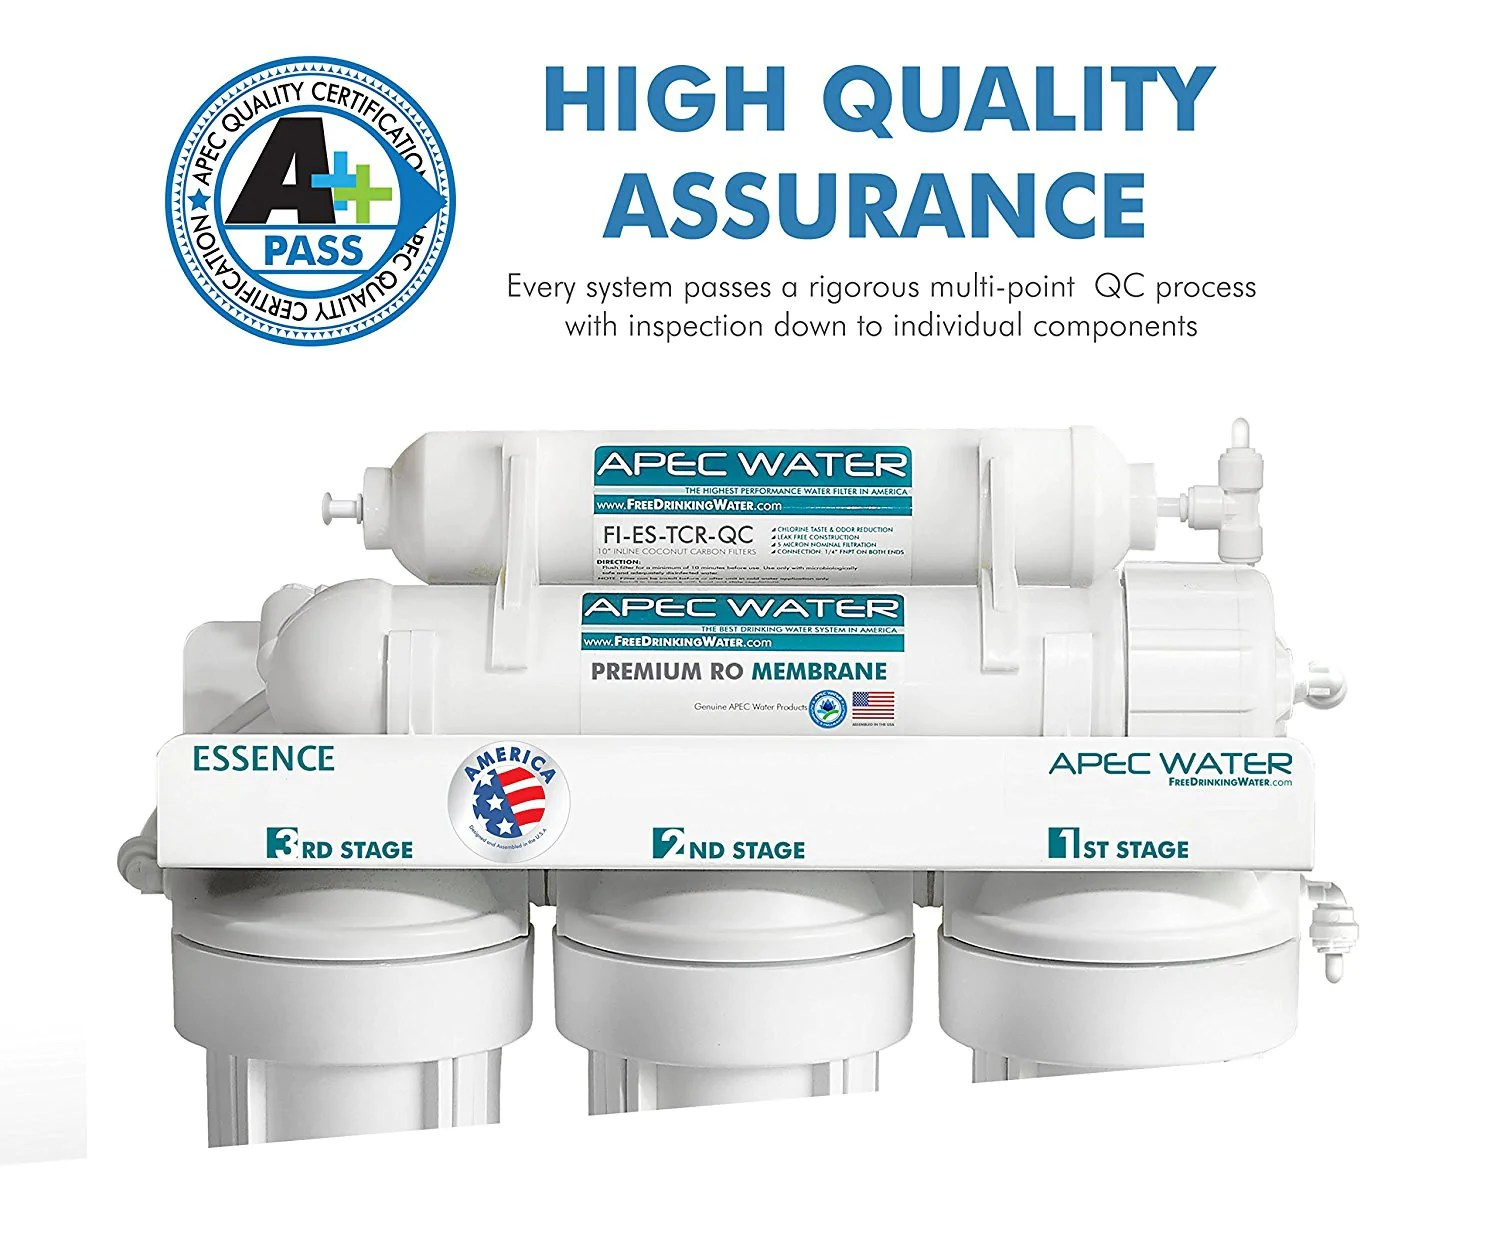 Reverse Osmosis Drinking Water System Ispring Rcc7ak 6 Stage Under Sink Reverse Osmosis Drinking Water Filtration System With Alkaline Remineralization Filter 75 Gpd